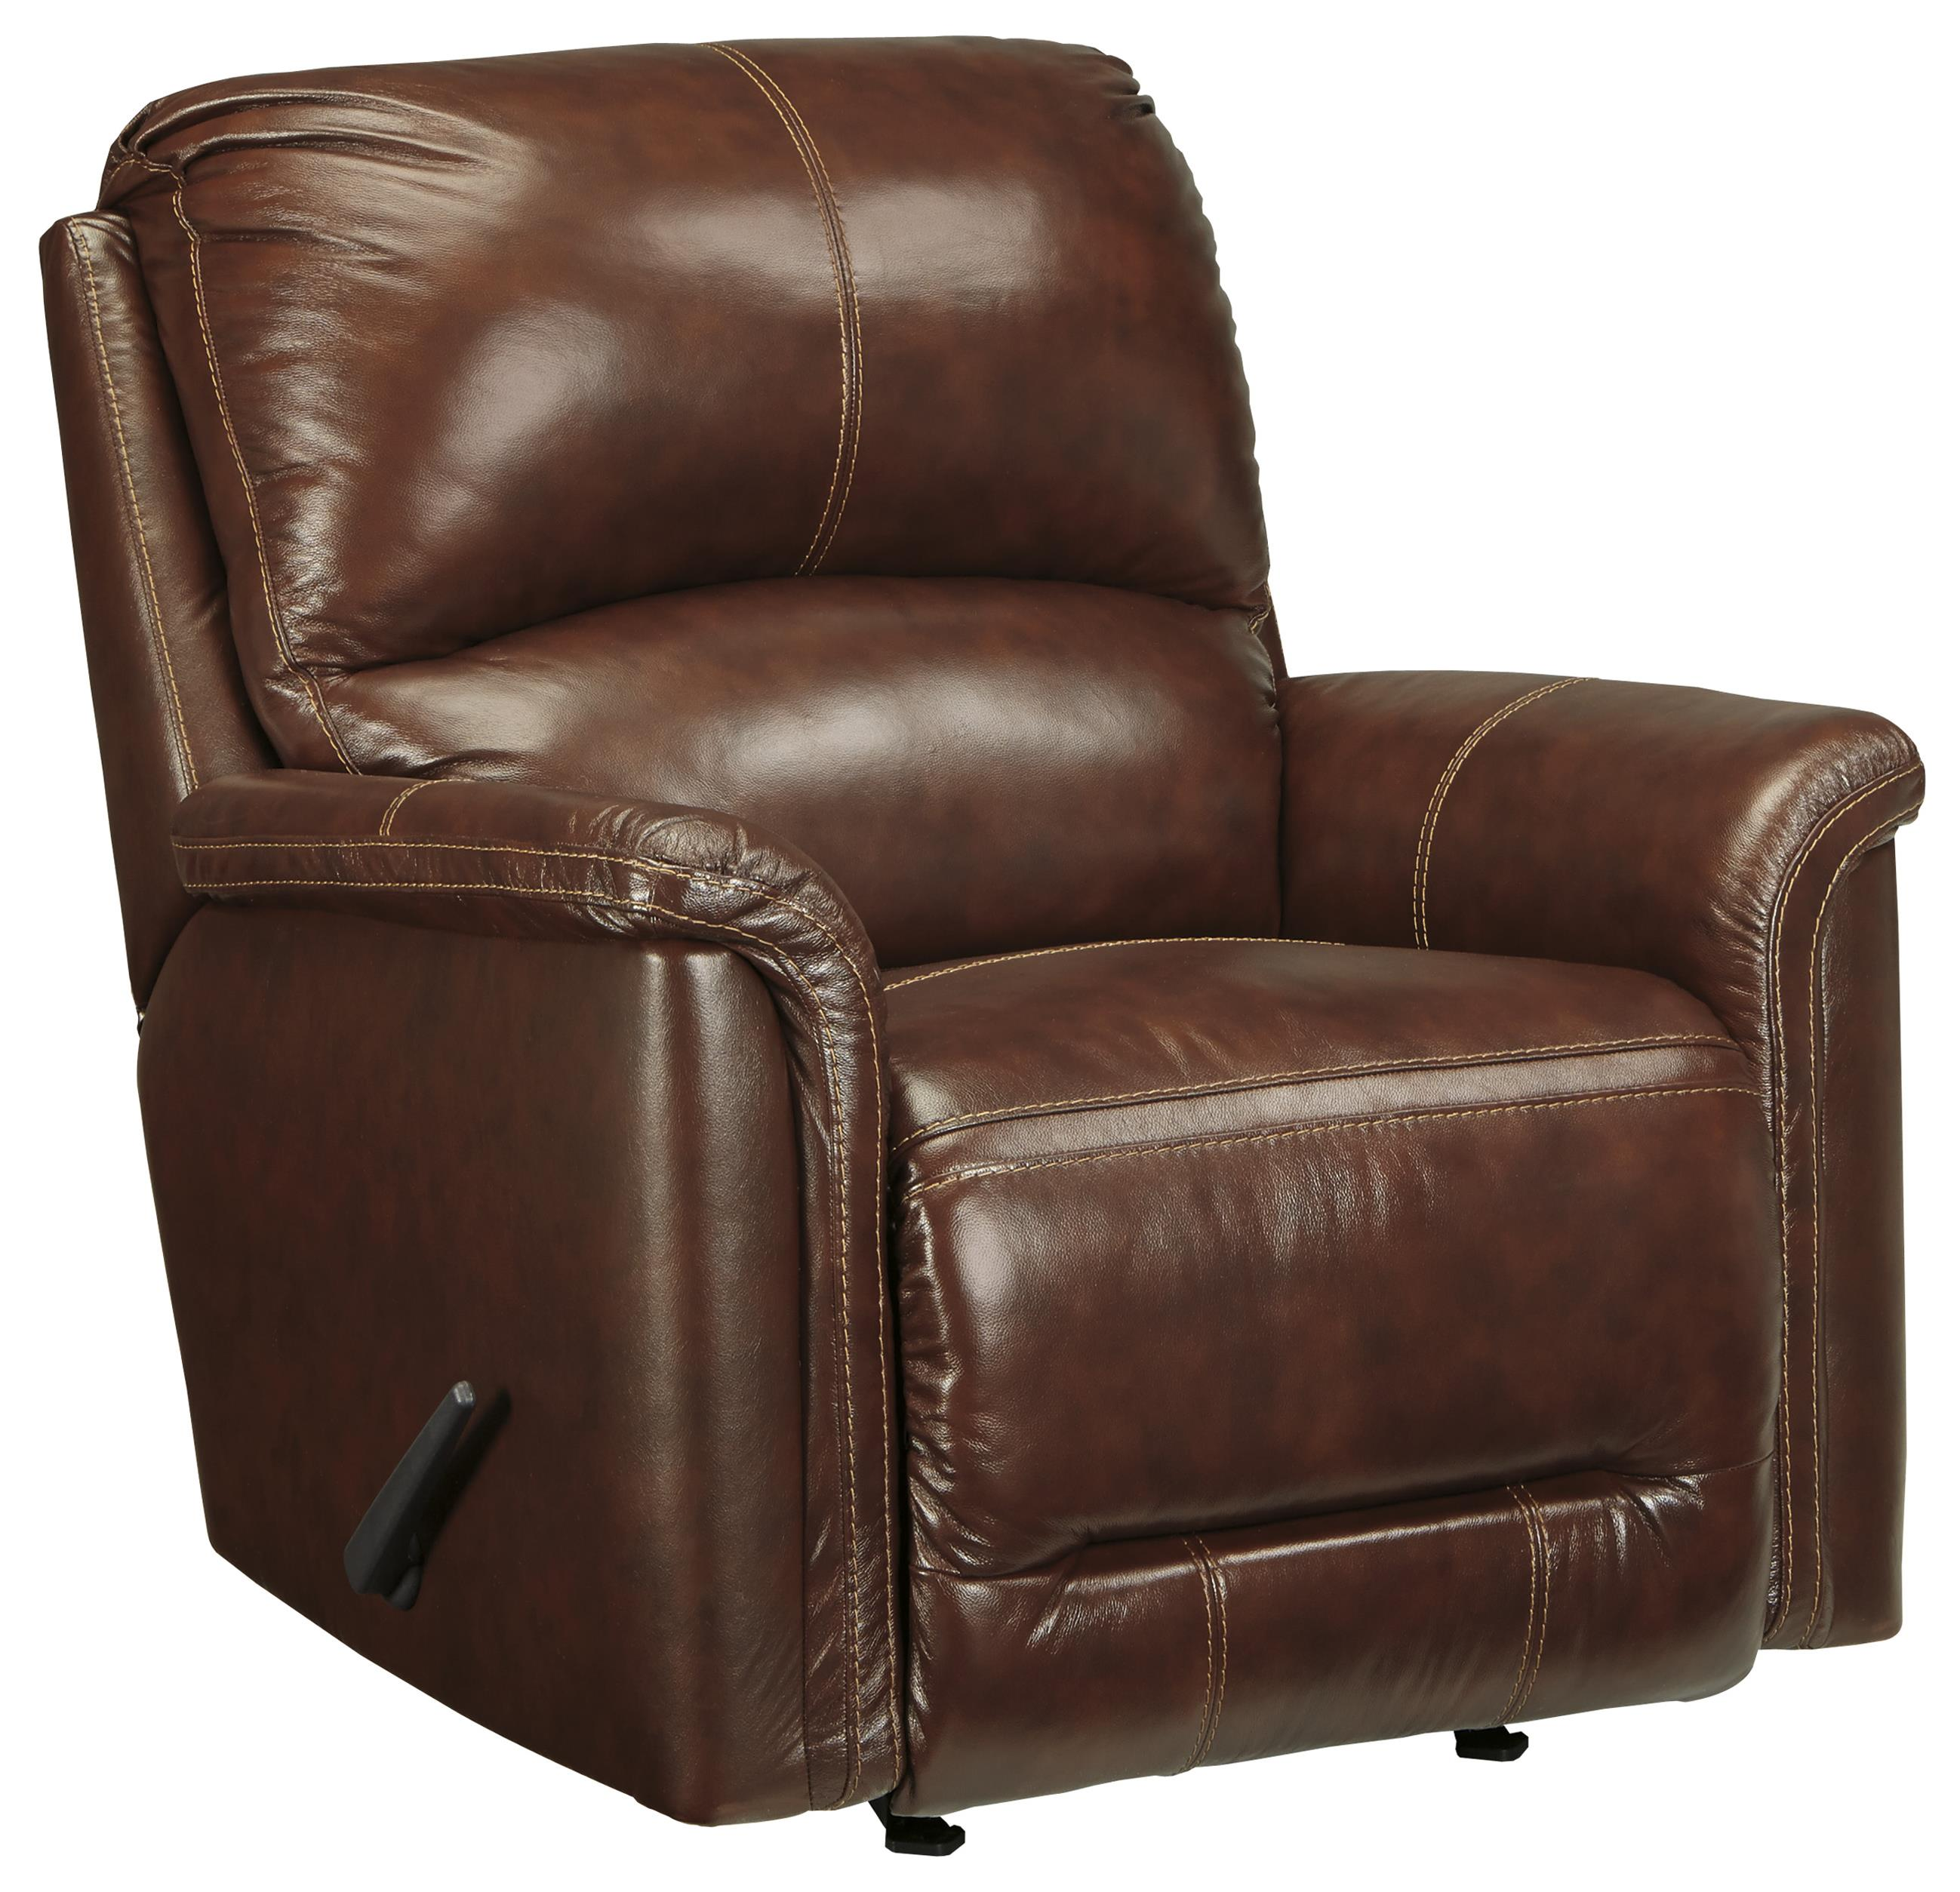 Signature Design by Ashley Lacotter Rocker Recliner - Item Number: 8660125